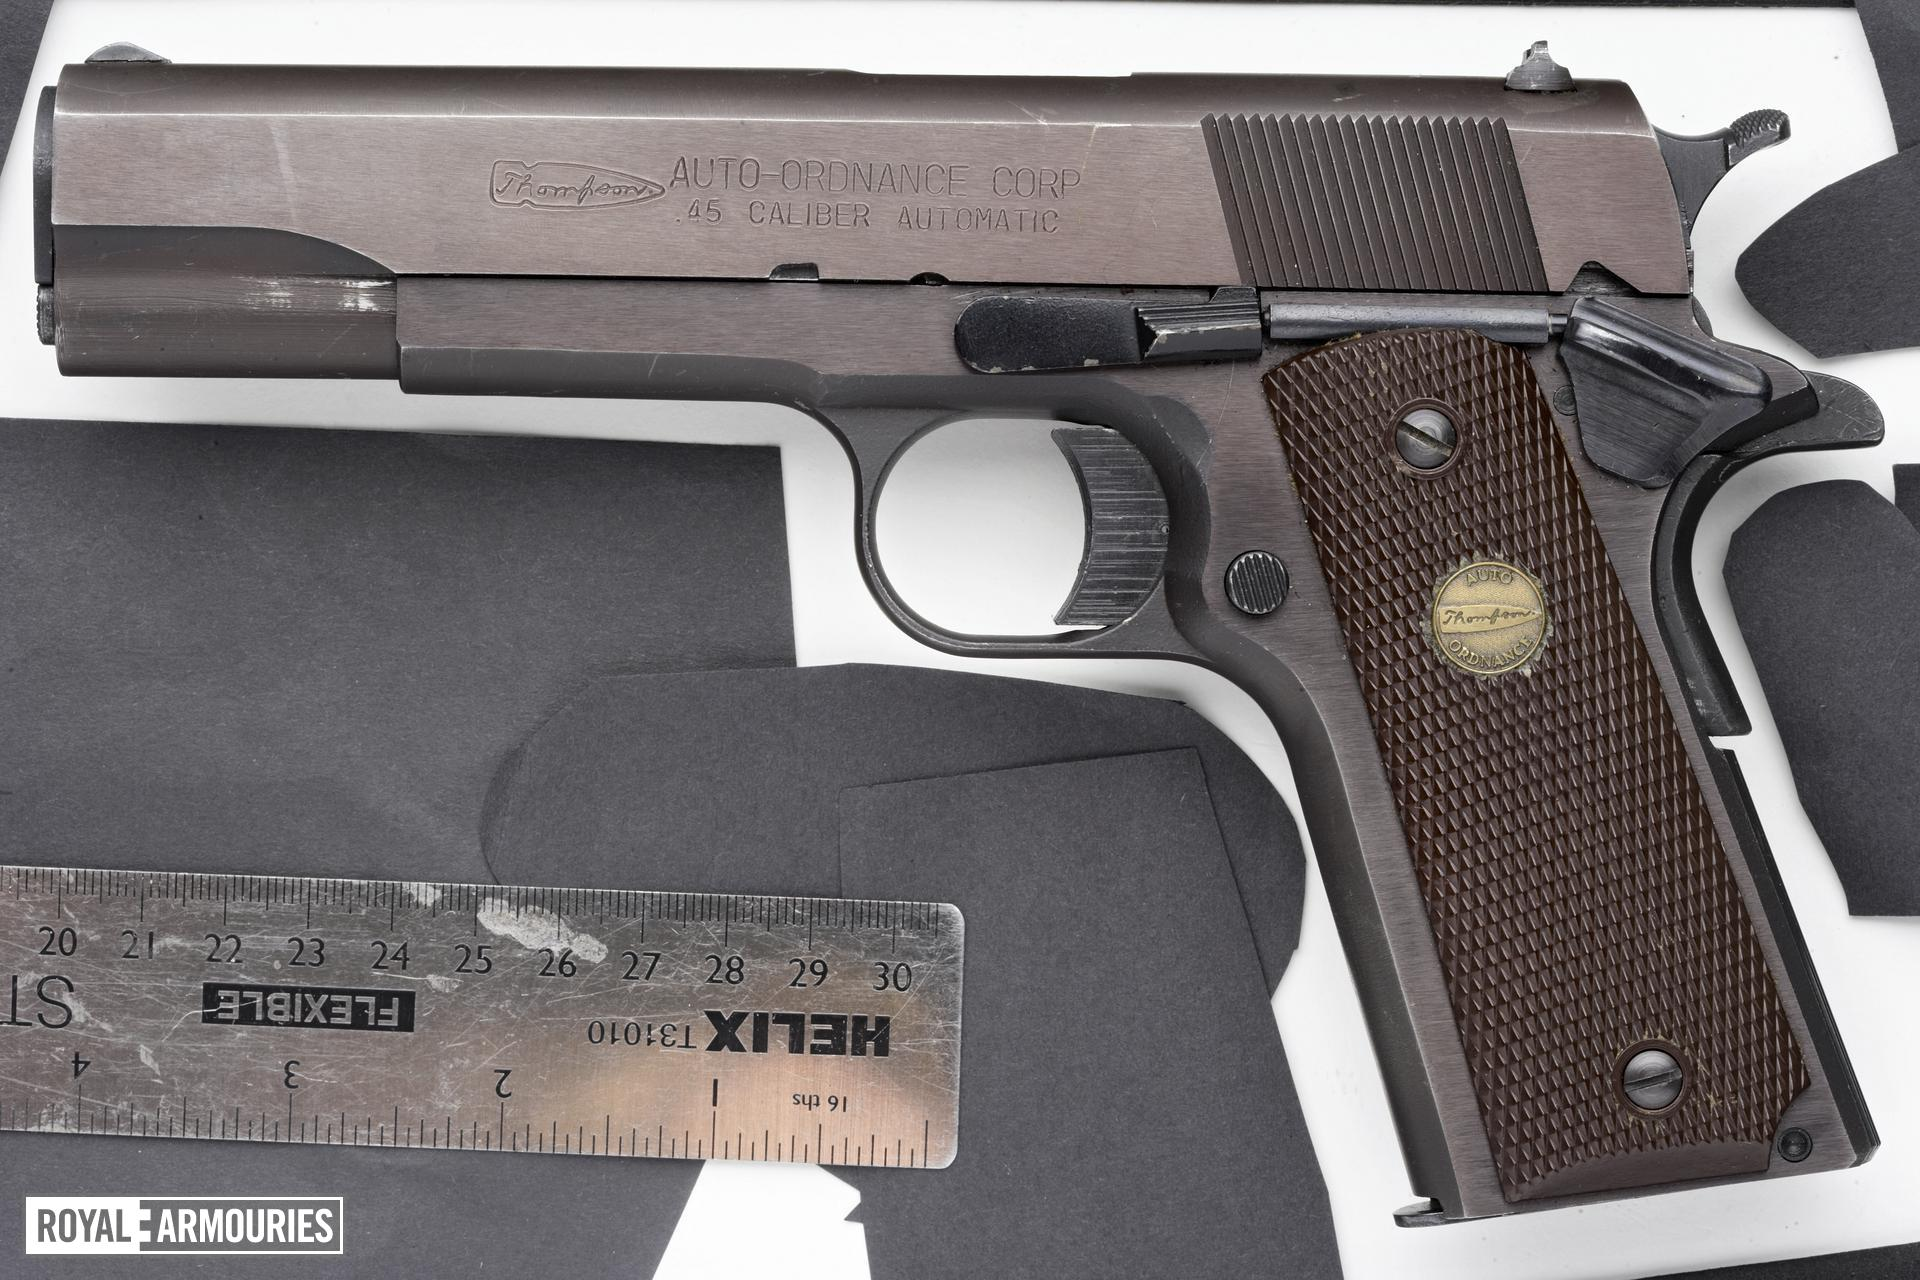 Centrefire self-loading pistol - Auto Ordnance Model 1911A1